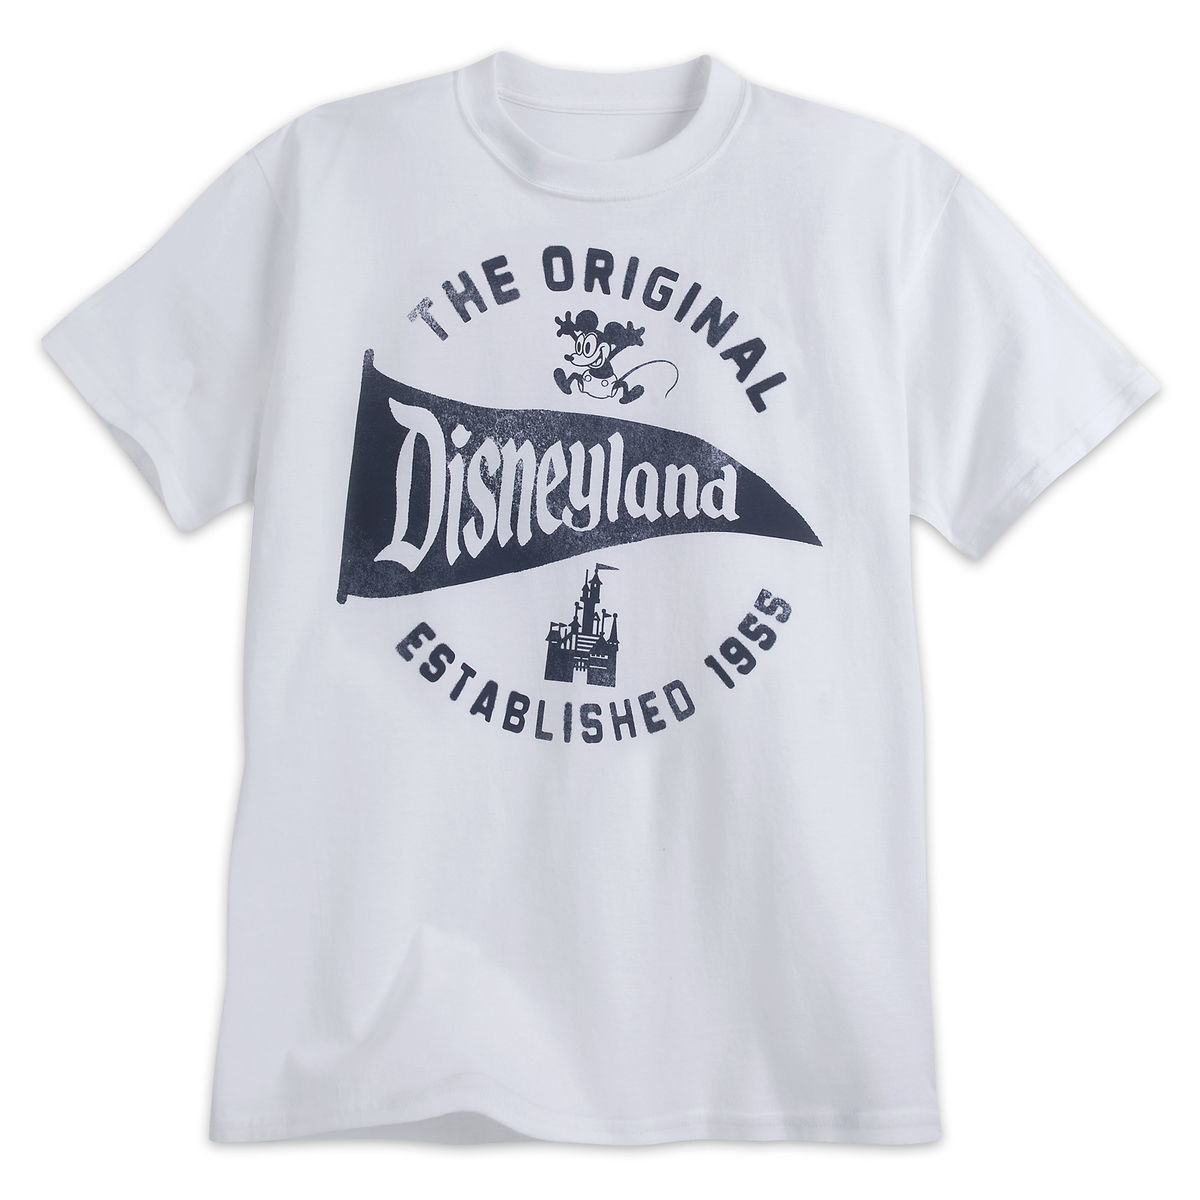 Product Image Of Disneyland Pennant Tee For Adults